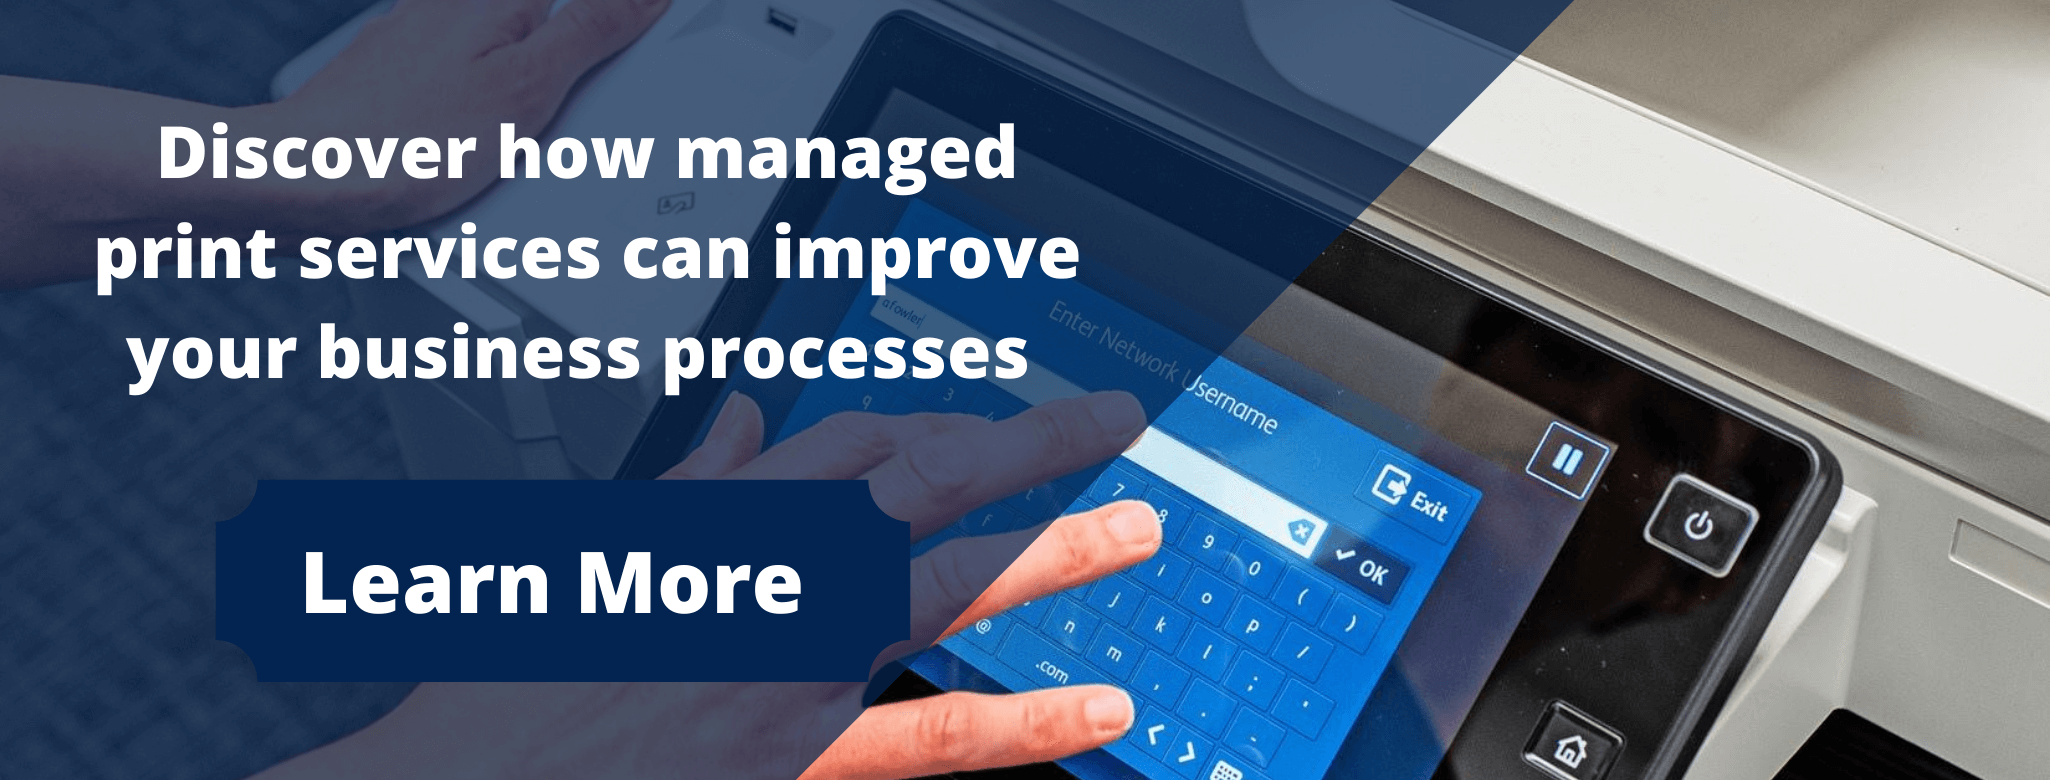 Discover how managed print services can improve your business processes